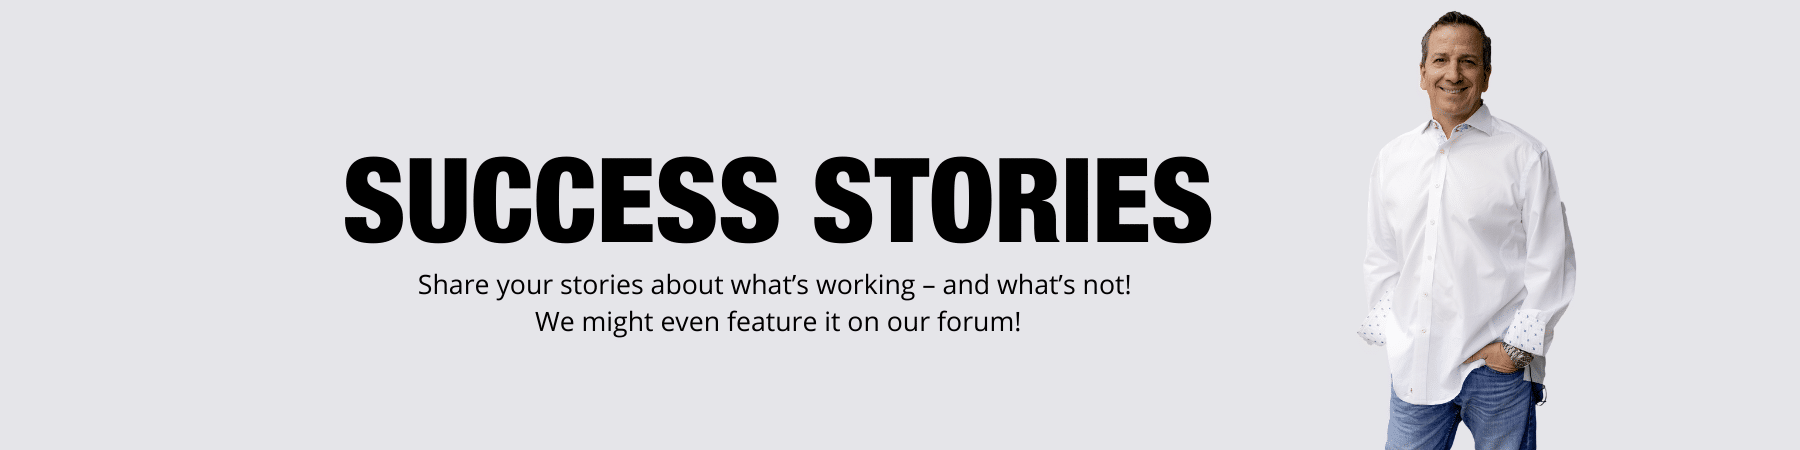 Share your stories about whats working – and whats not We might even feature it on our forum | Ken McElroy Image